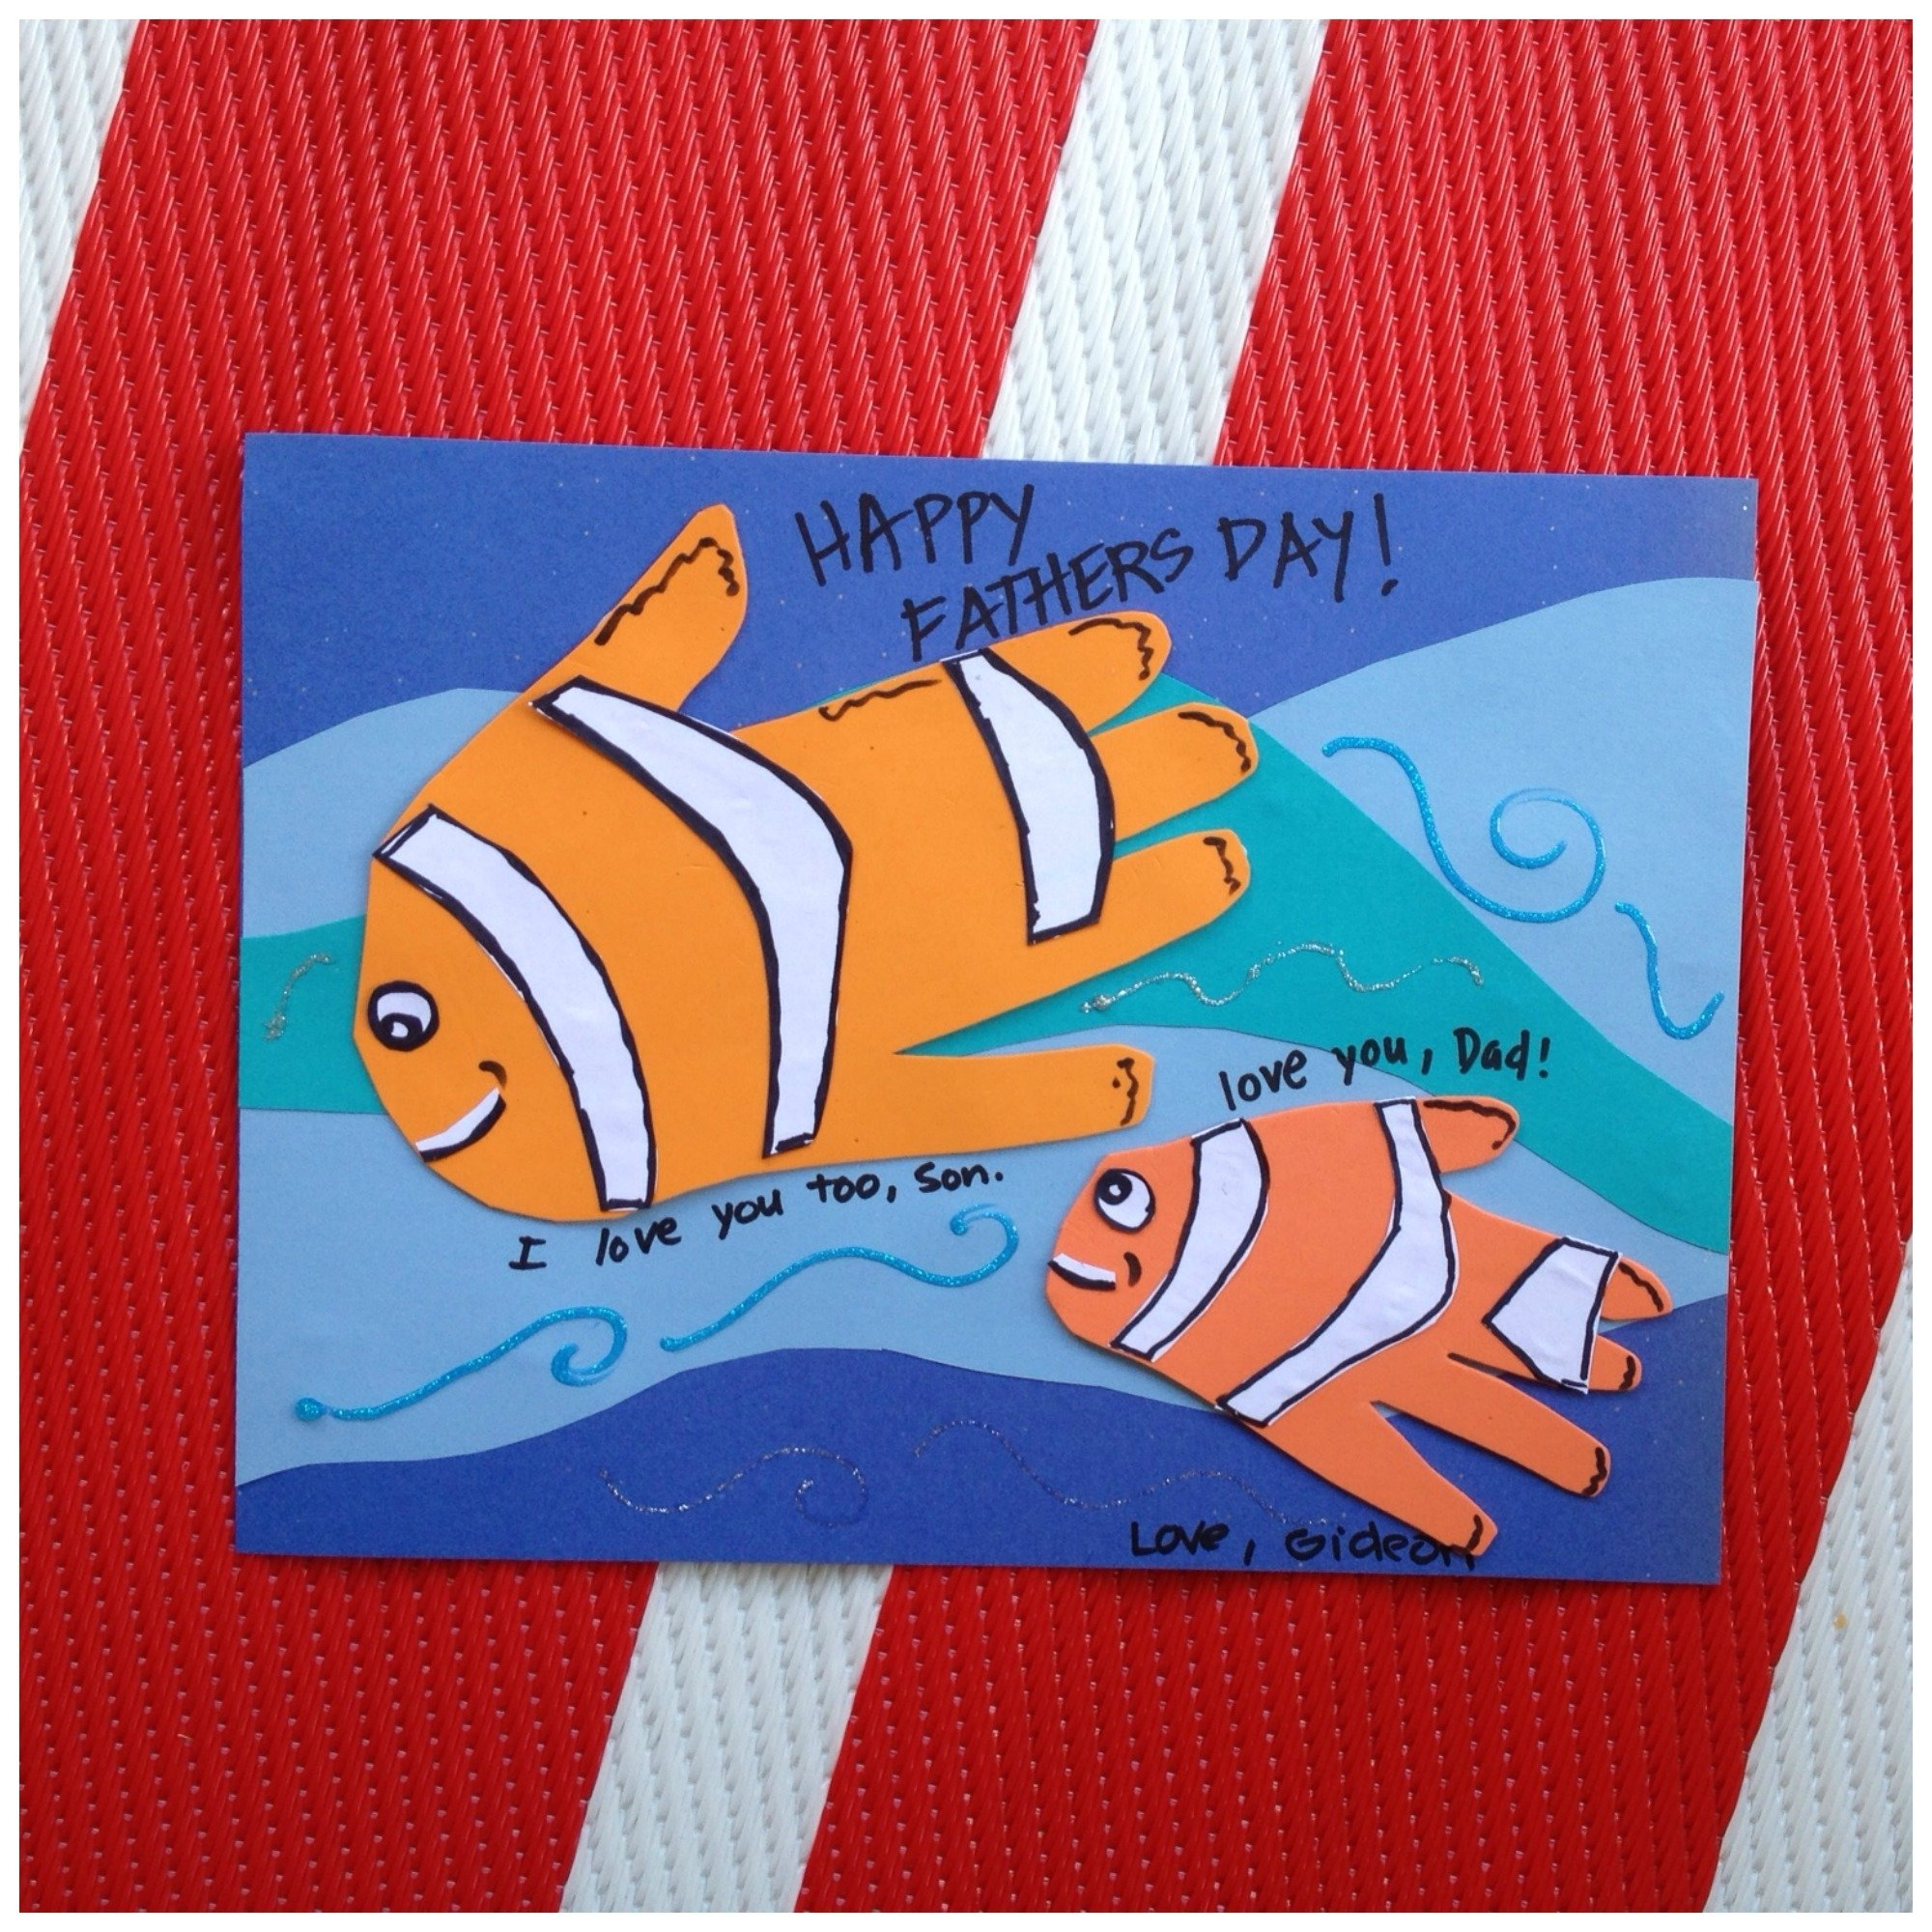 10 Elegant Fathers Day Ideas For Toddlers fish handprint fathers day craft c2b7 kix cereal